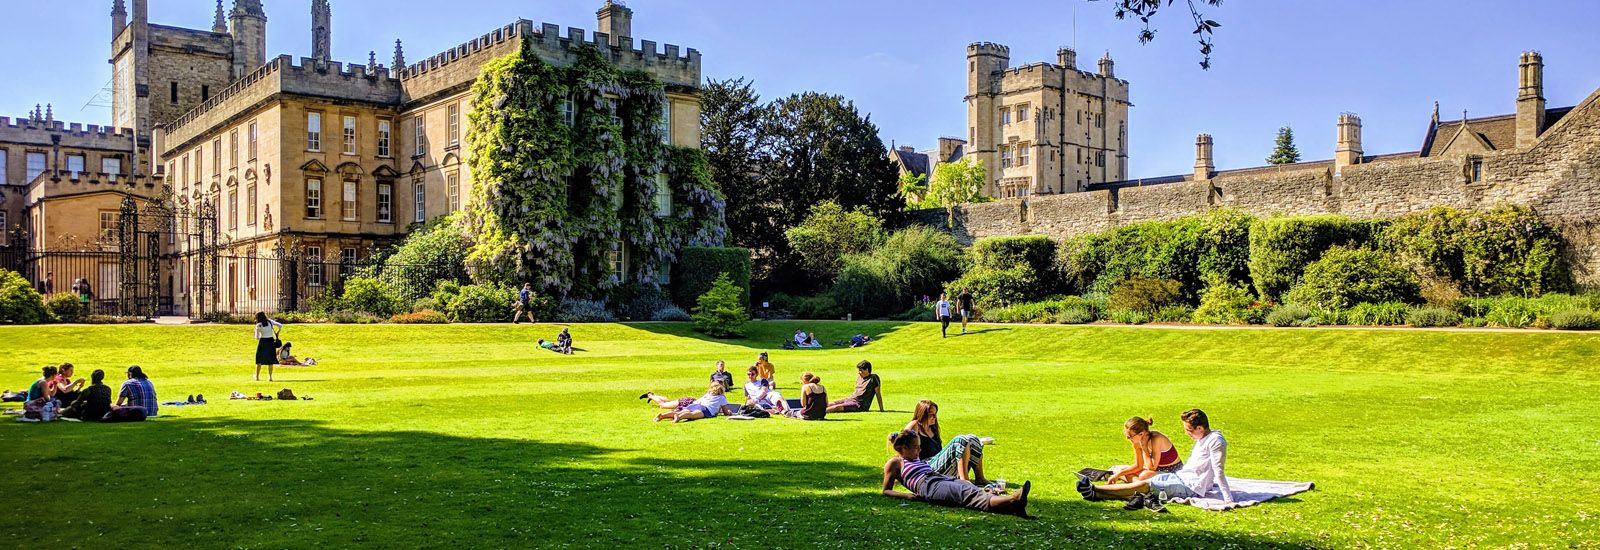 Students on the grass in the grounds of New College